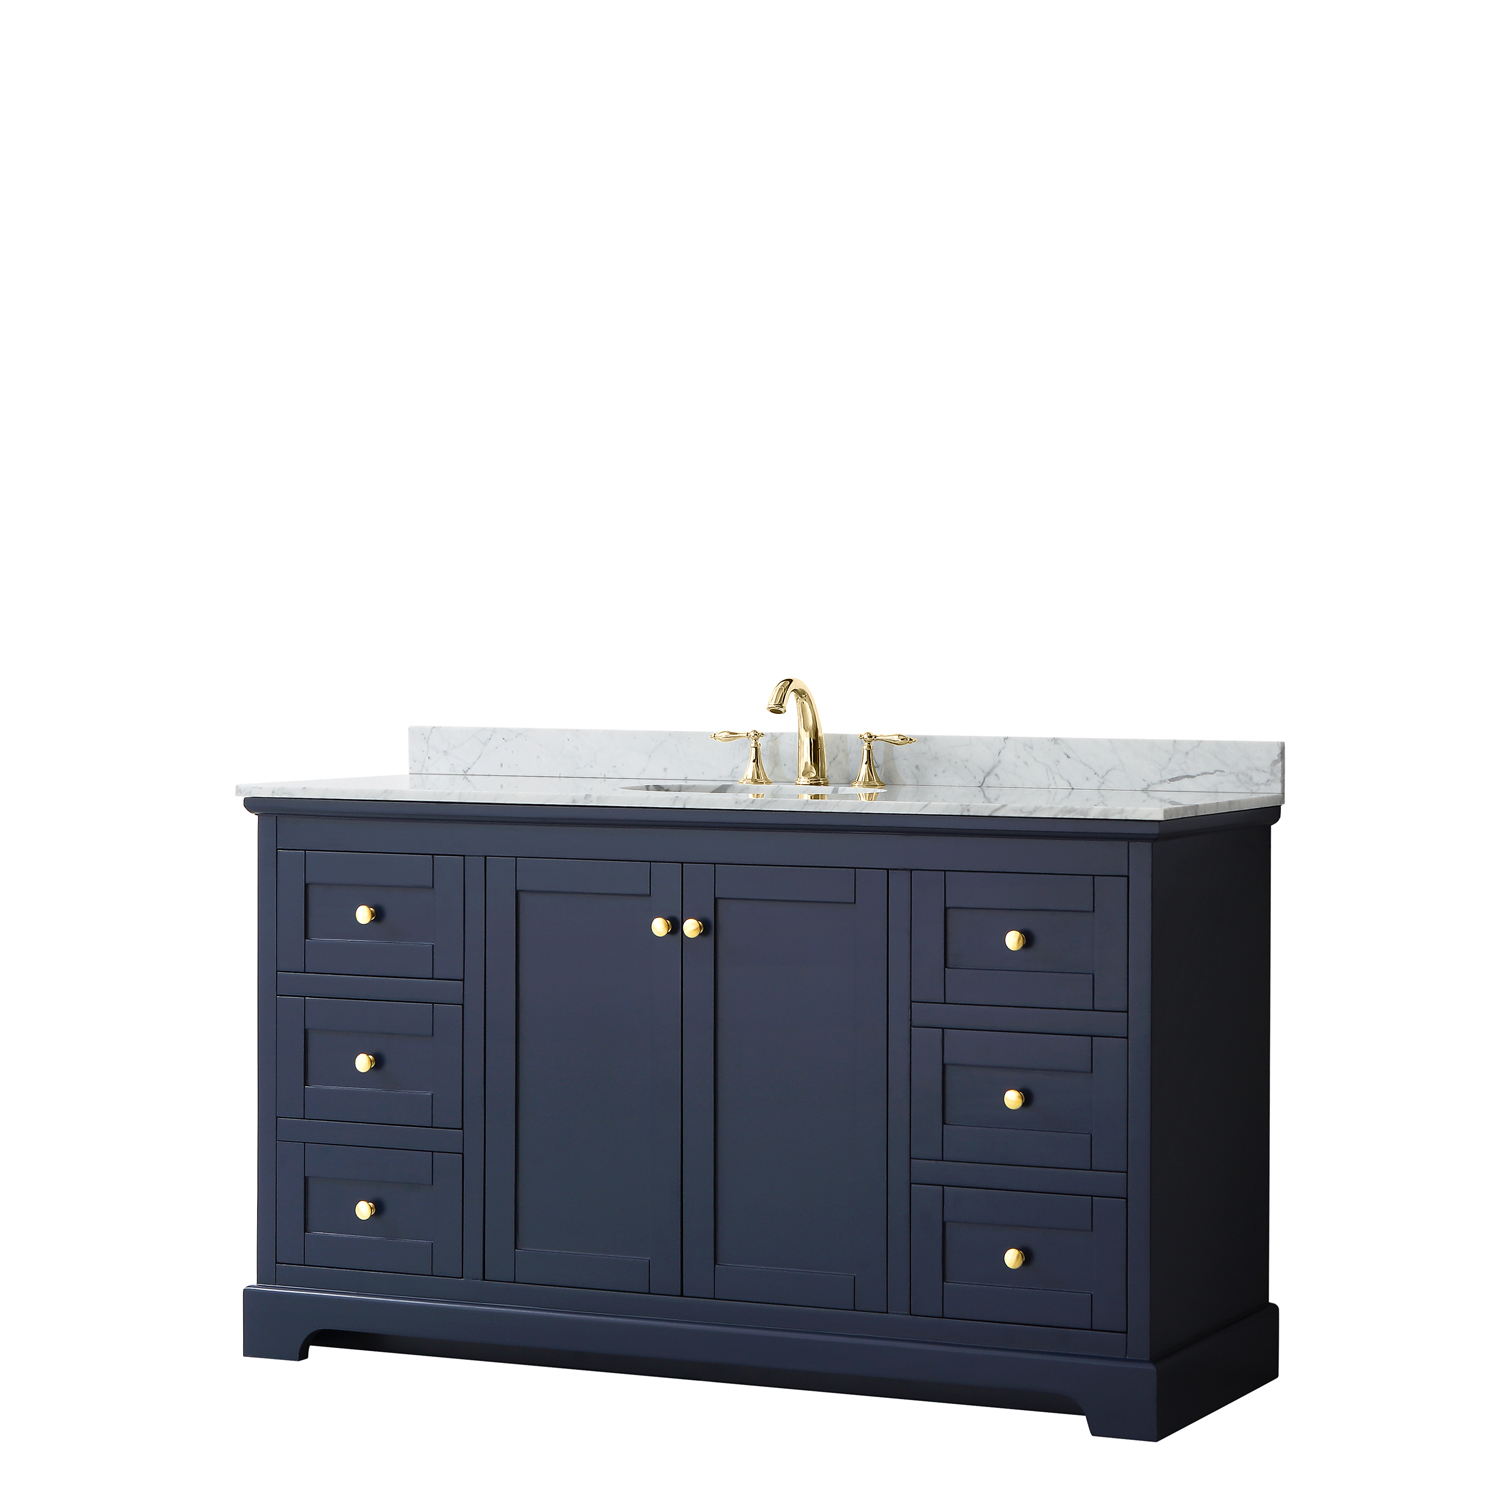 "60"" Single Bathroom Vanity in Dark Blue, No Countertop, No Sink, and No Mirror"